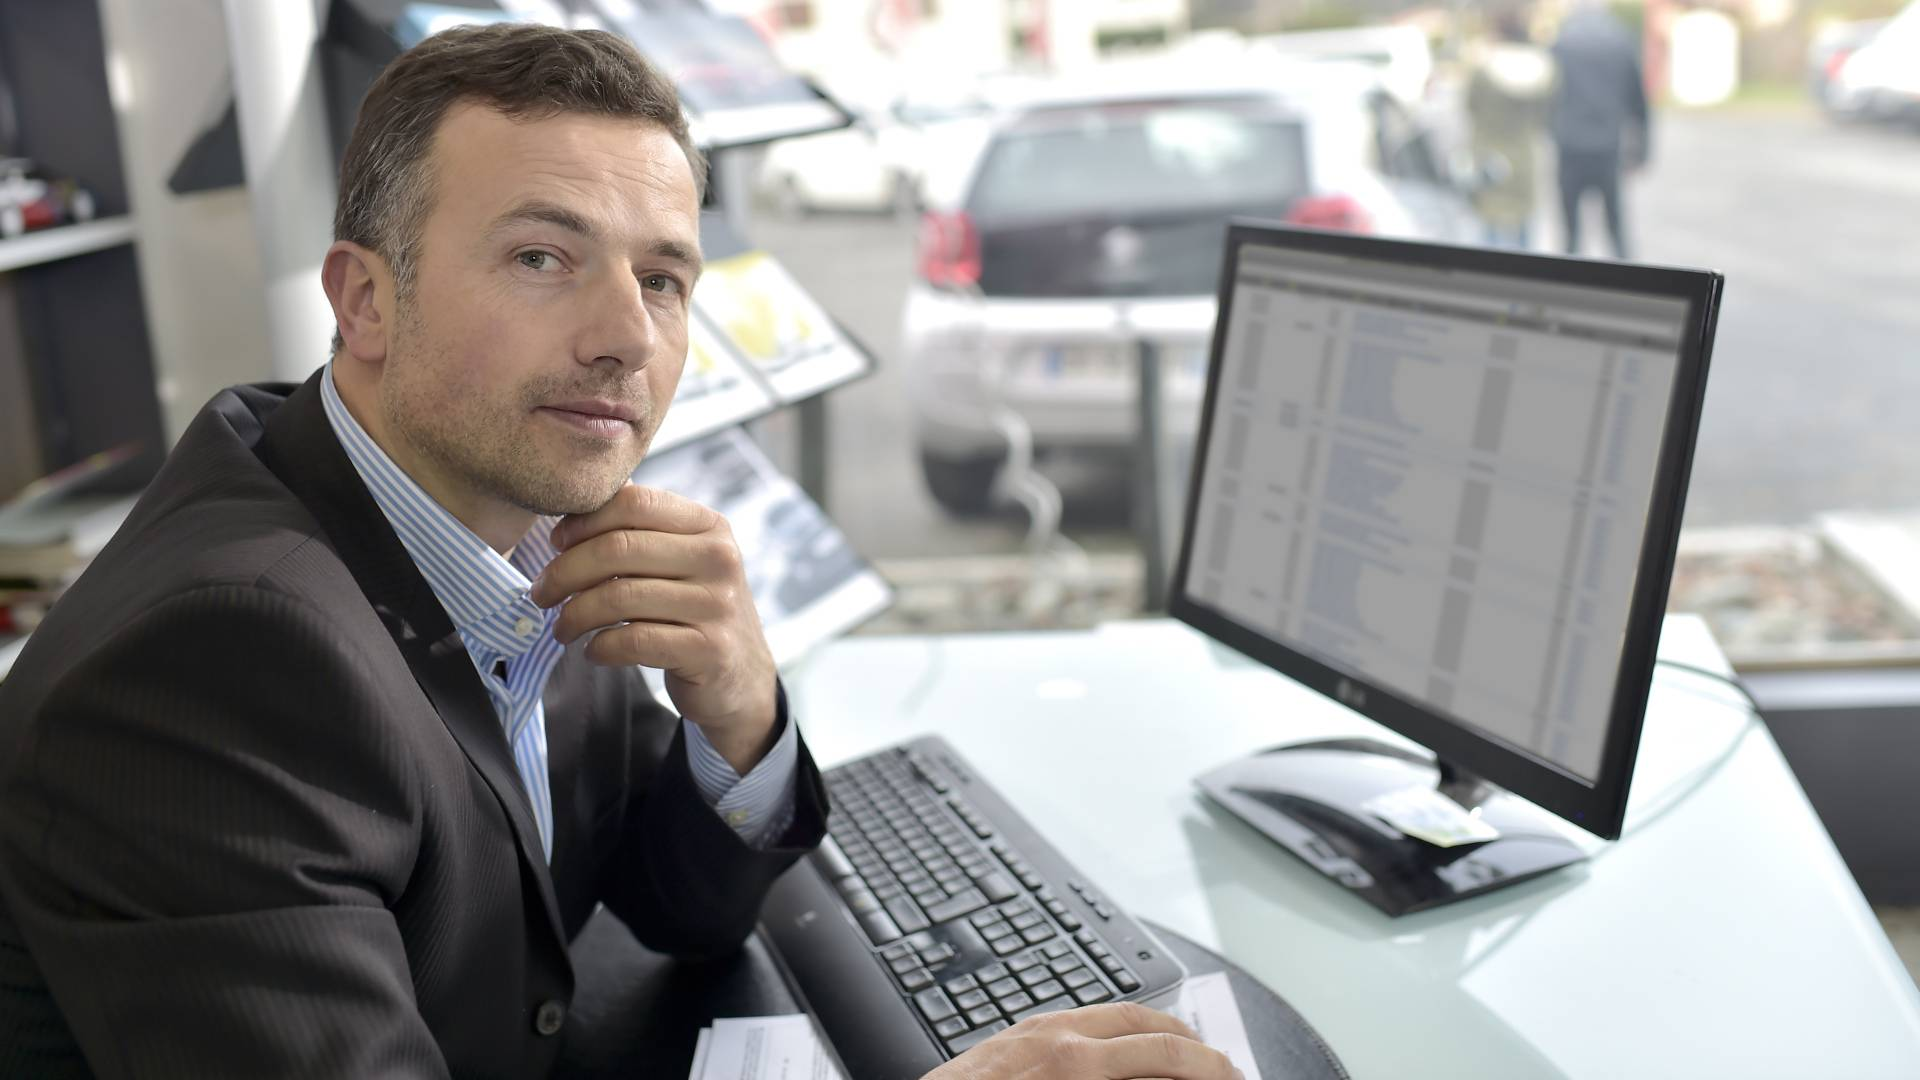 Car dealers ignore half of online sales inquiries, study shows